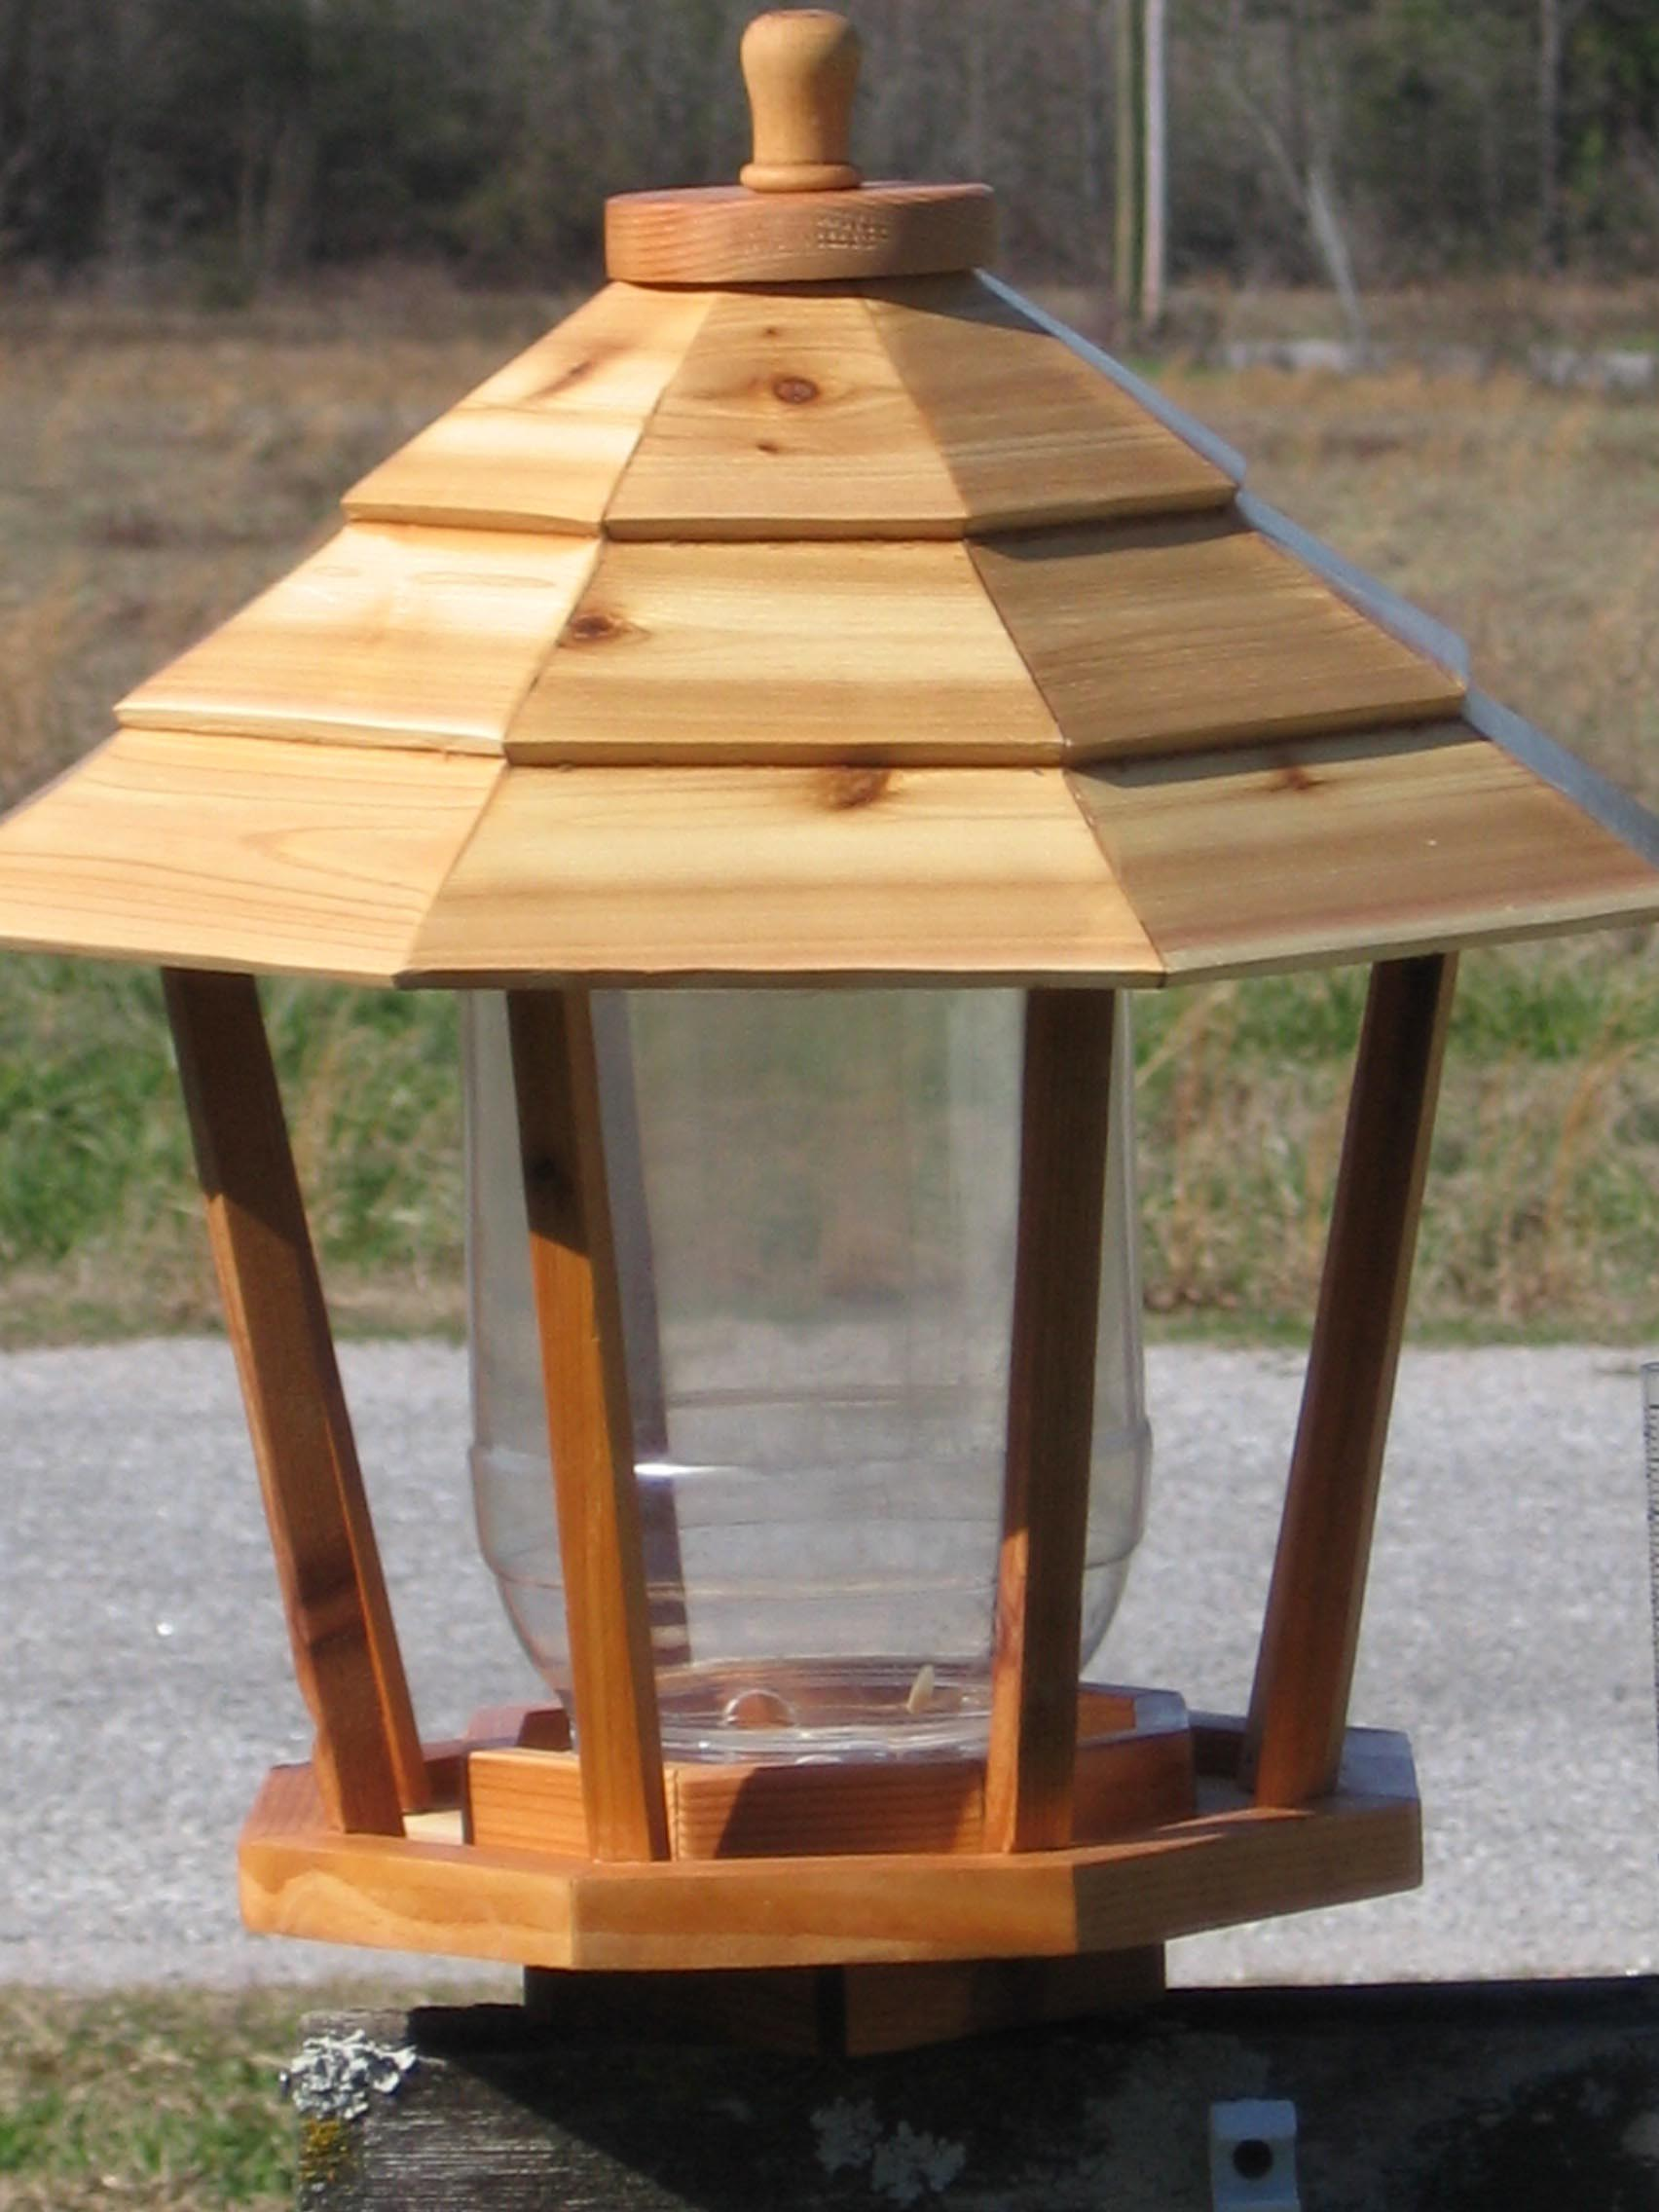 Large Cedar Gazebo Bird Feeder